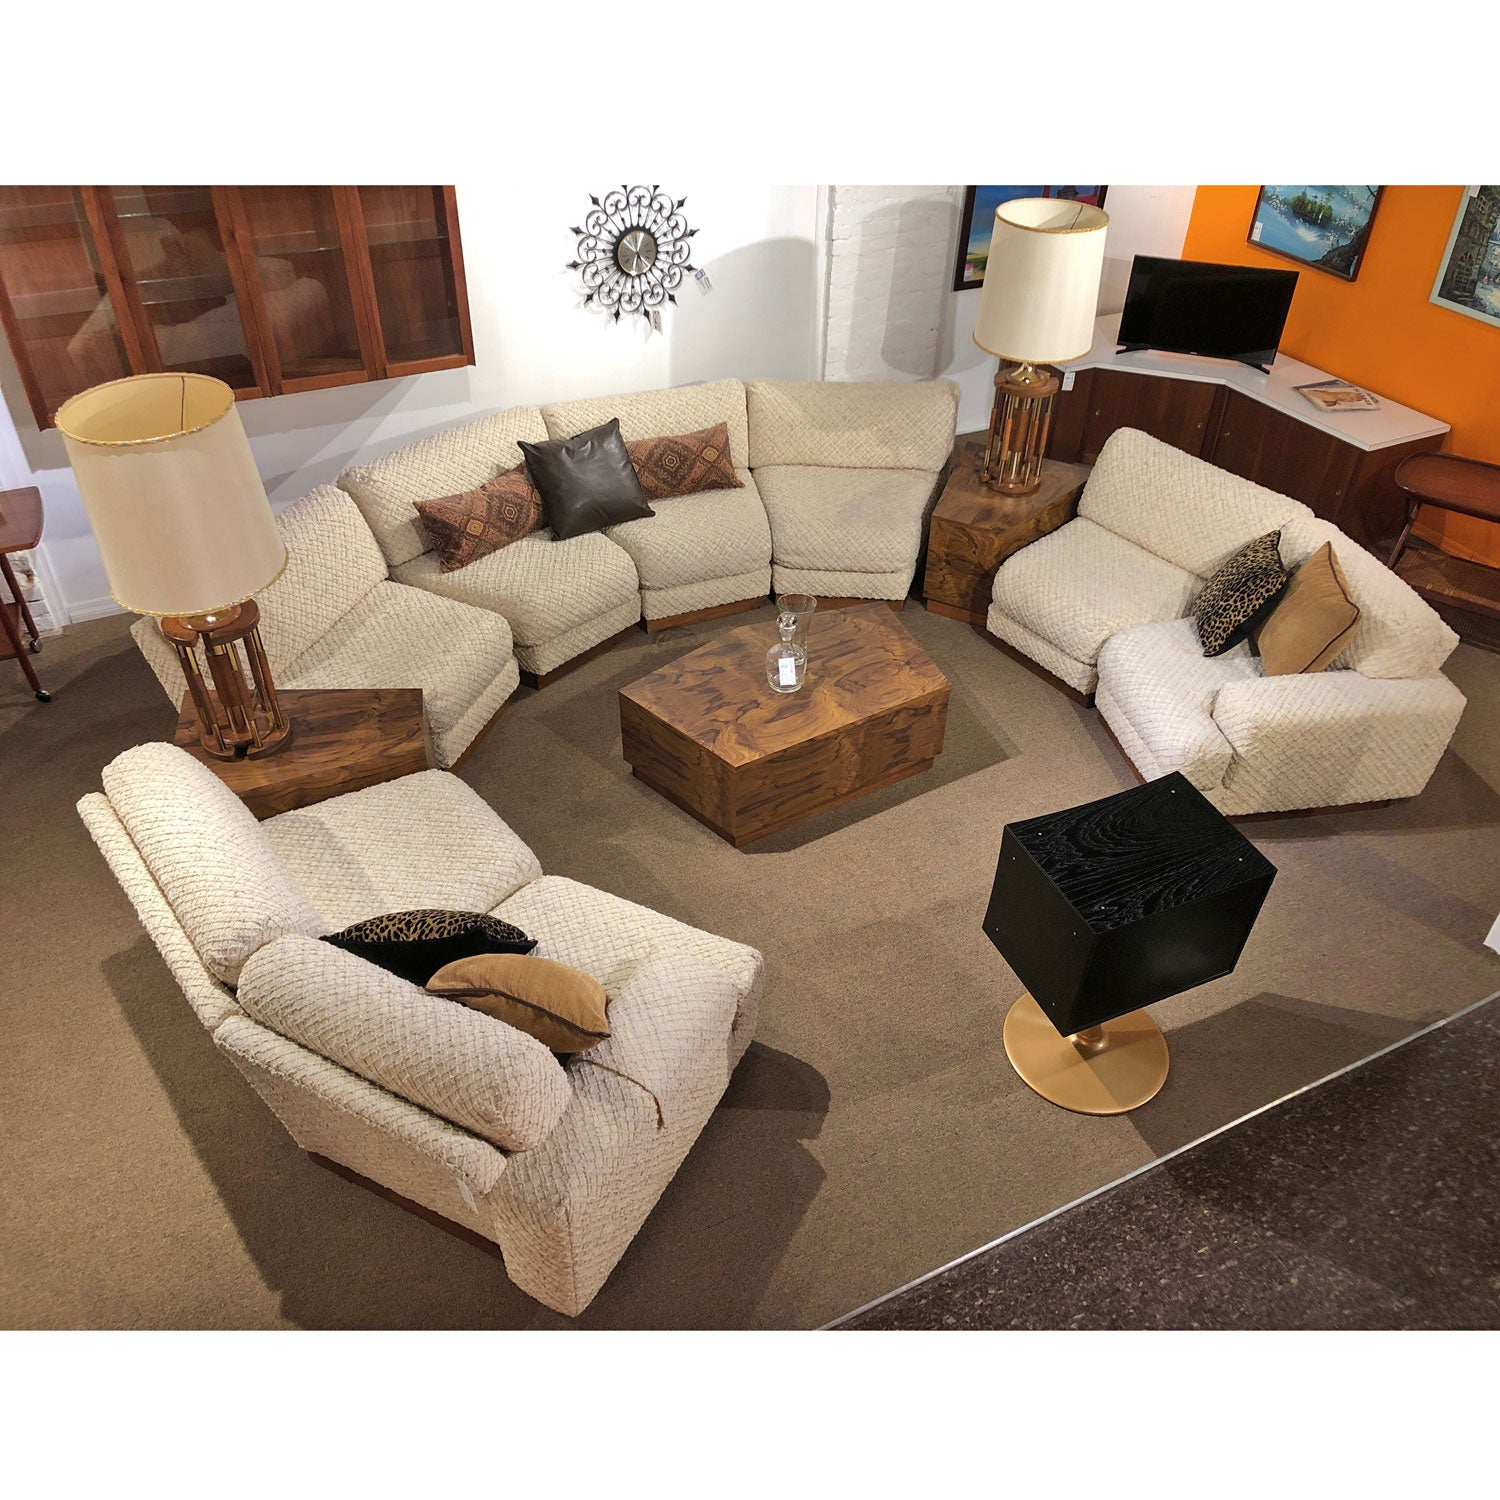 Sectional Sofa Couch And End Tables